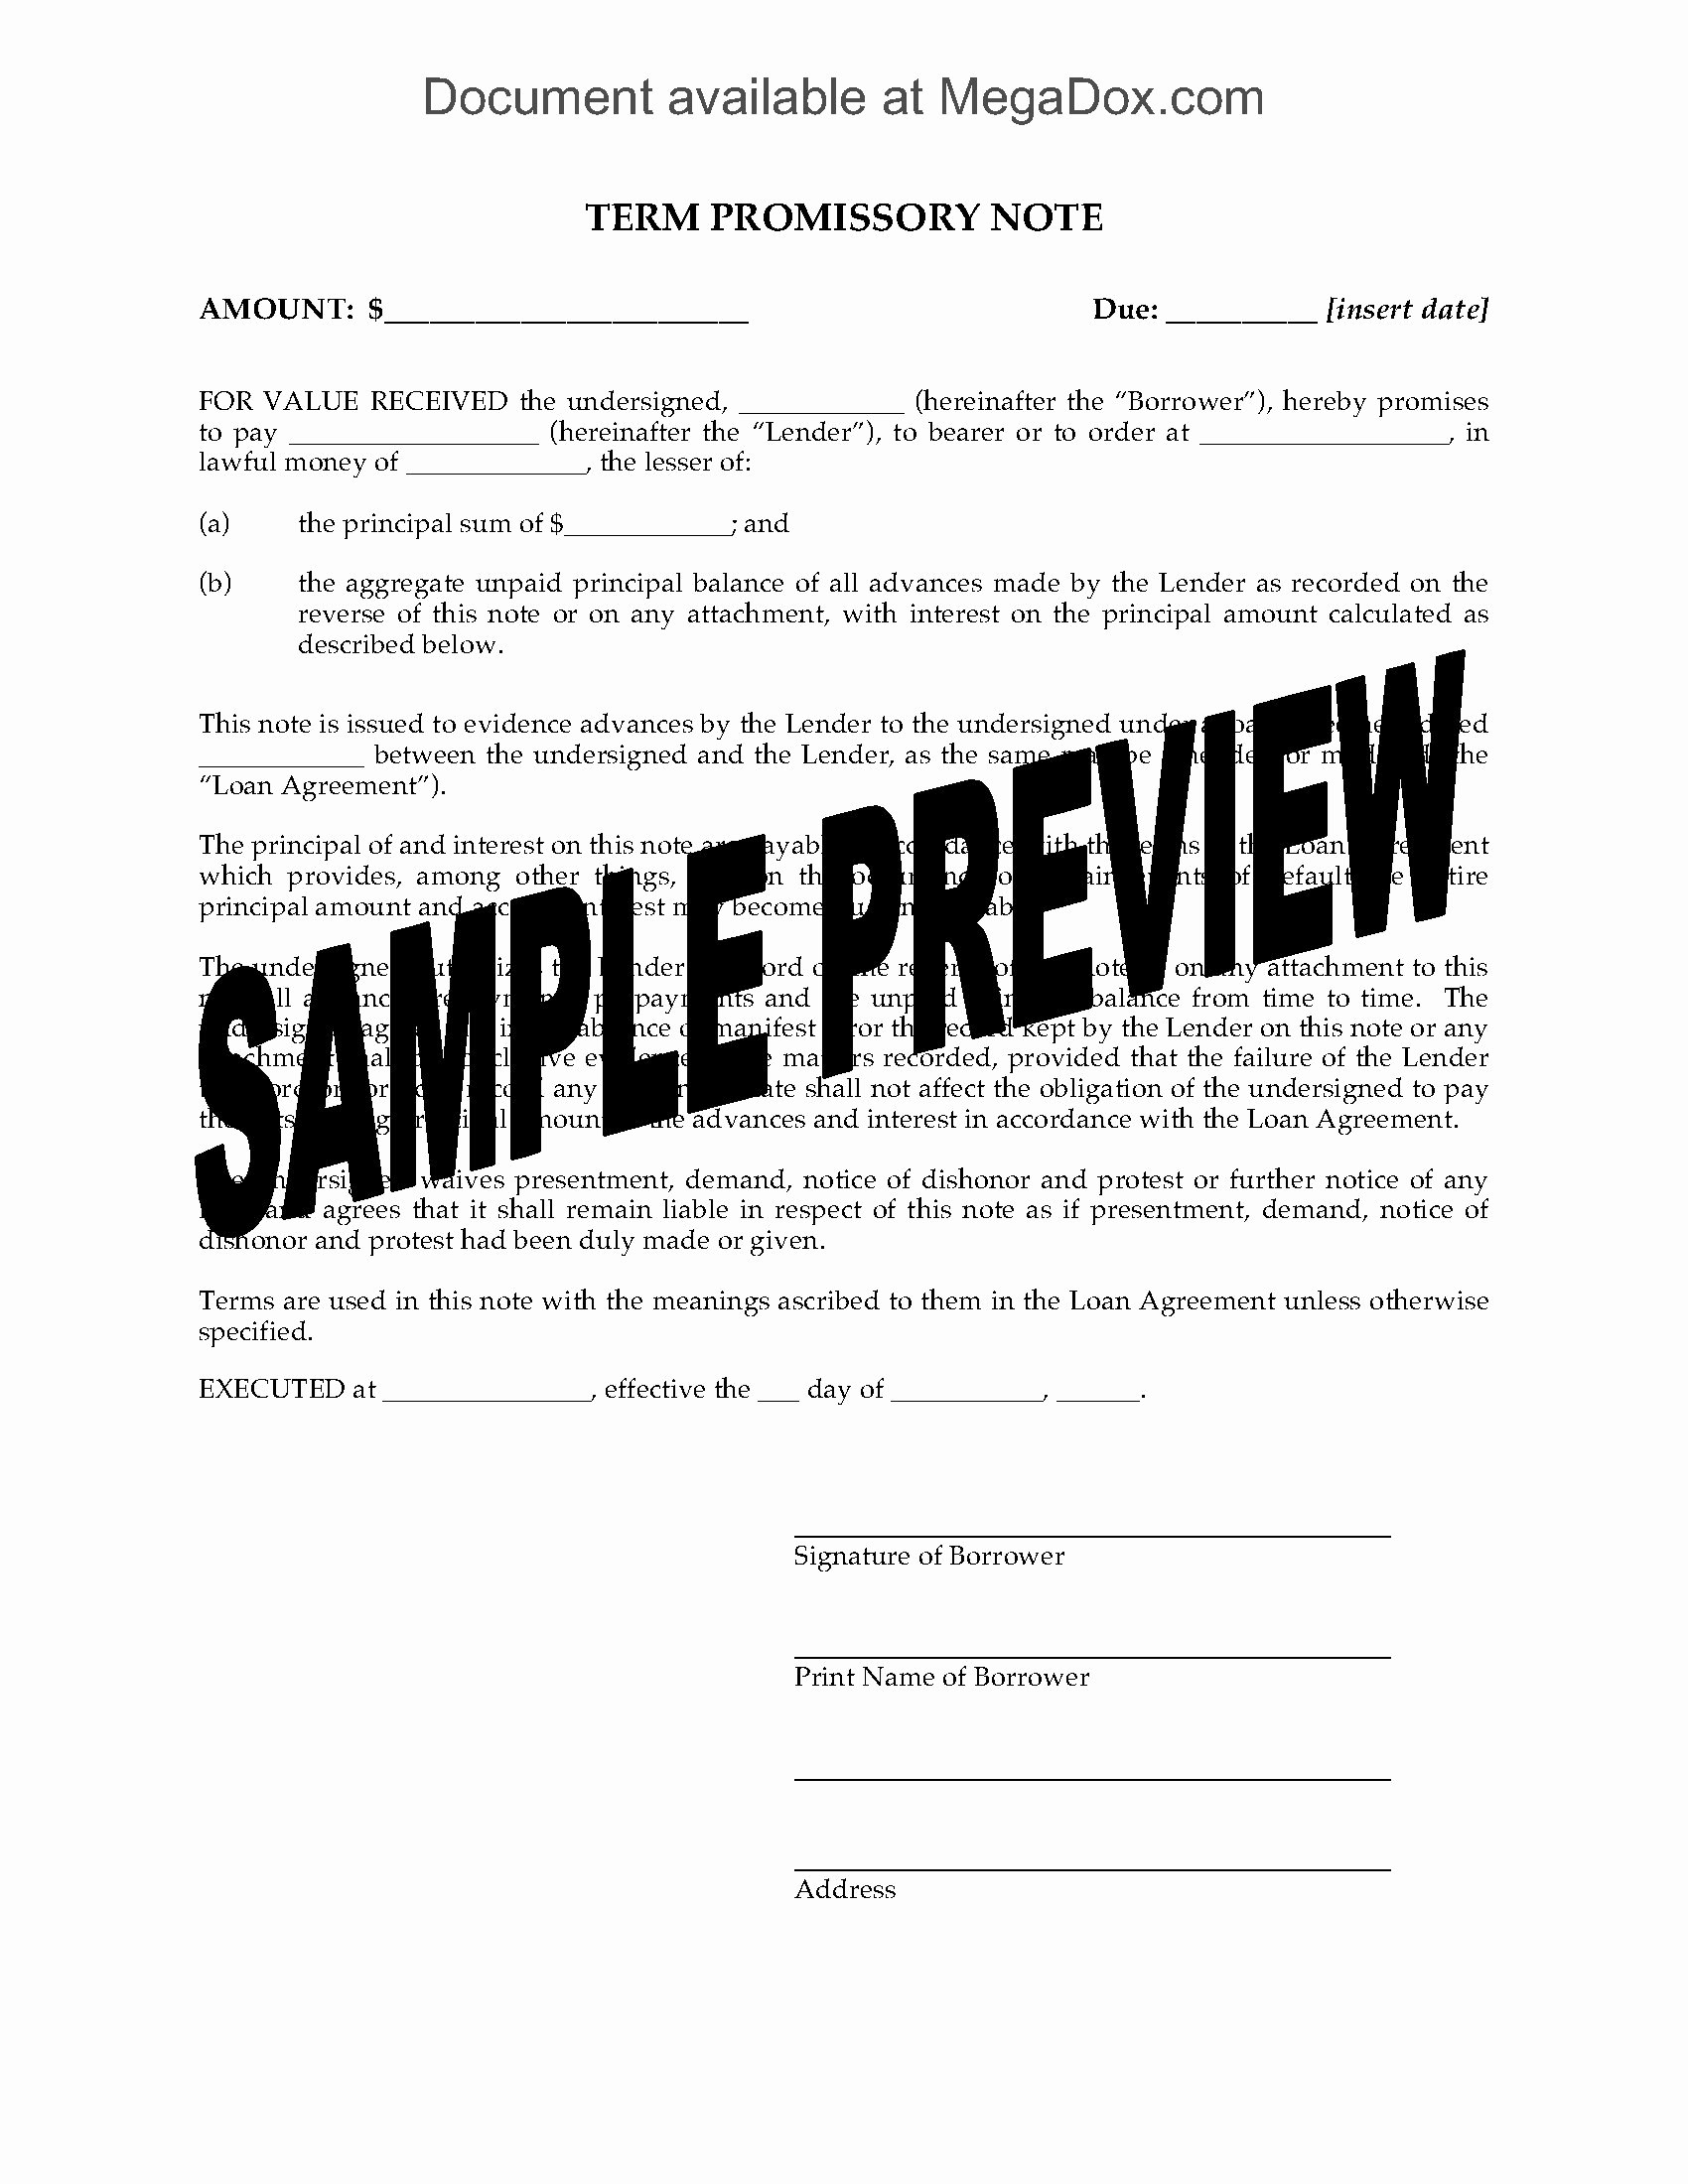 Promissory Note Template Texas Unique Grid Promissory Note for Multiple Loan Advances Legal forms and Business Templates